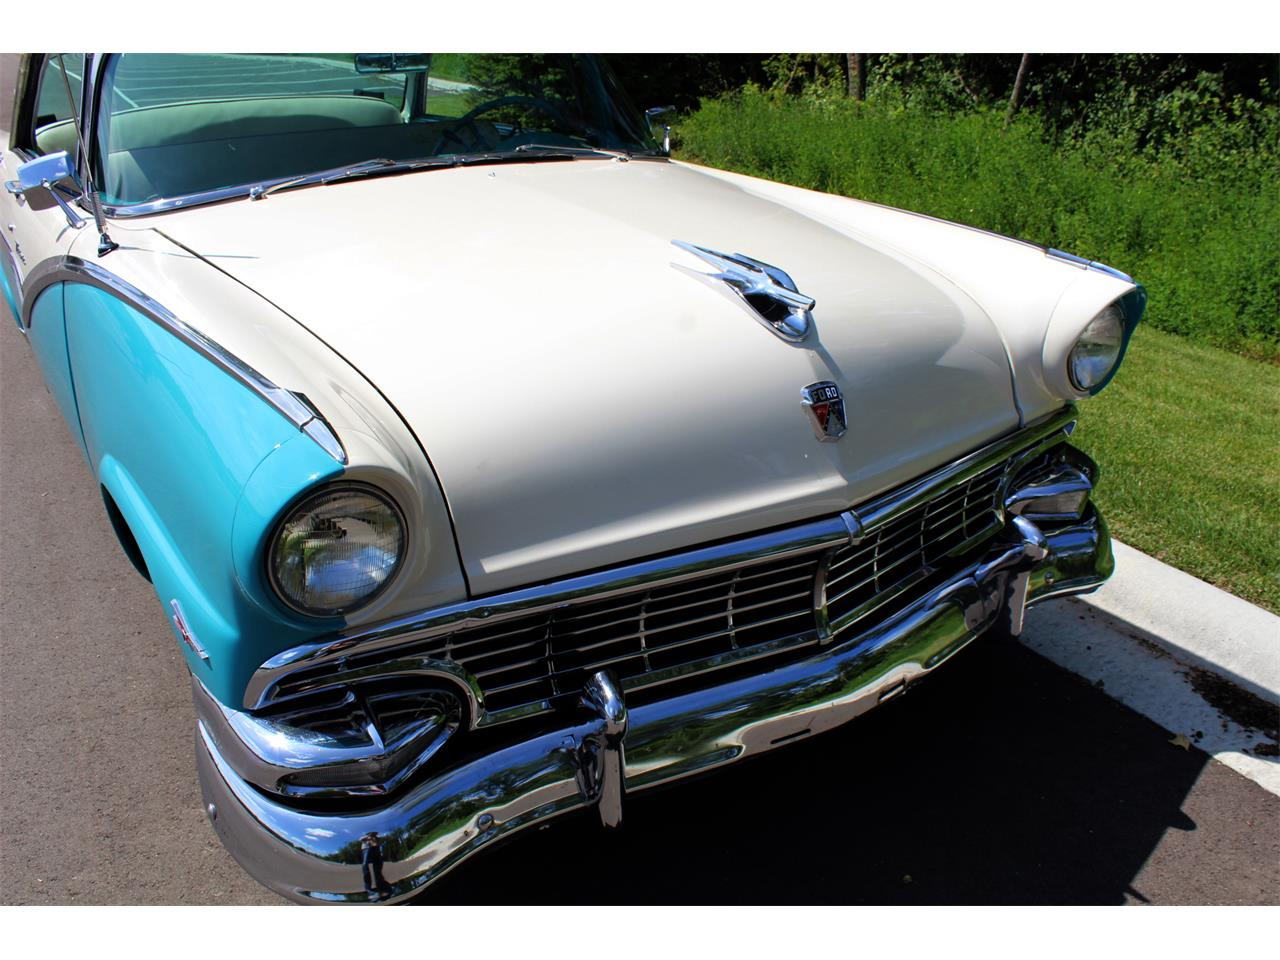 Large Picture of '56 Ford Fairlane located in Minnesota - $17,999.00 - PALK